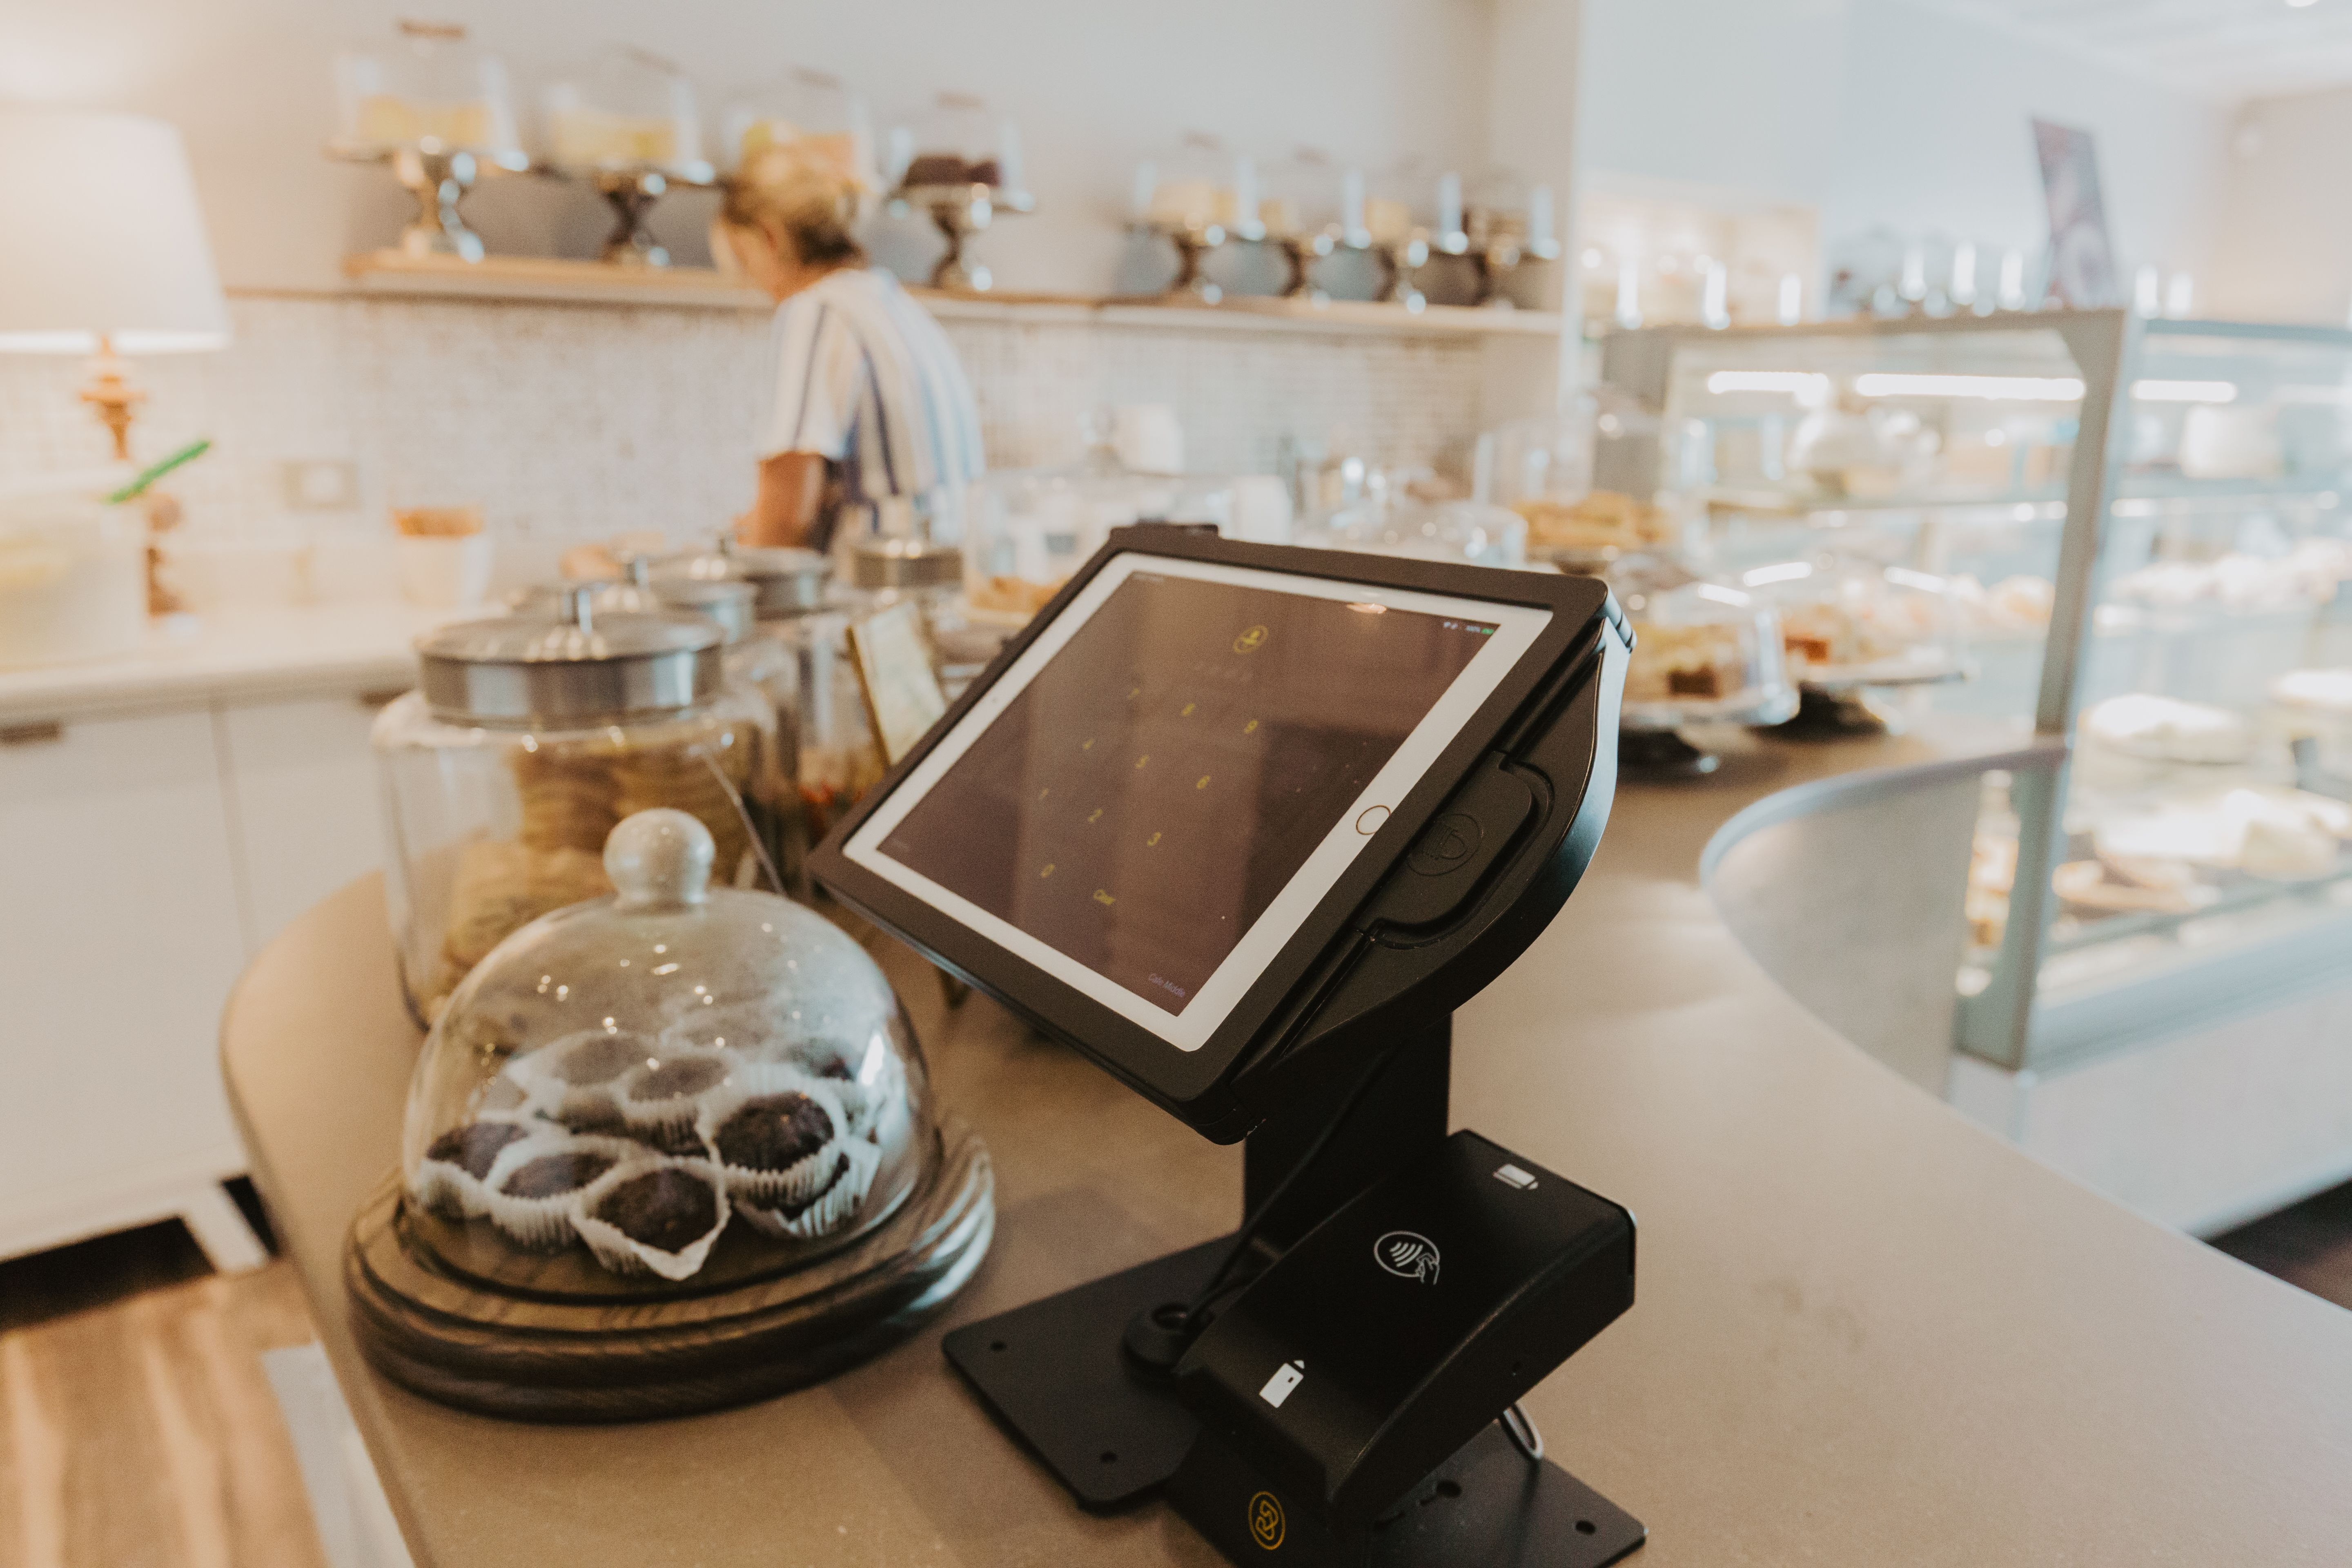 Vault Pro tablet enclosure in bakery